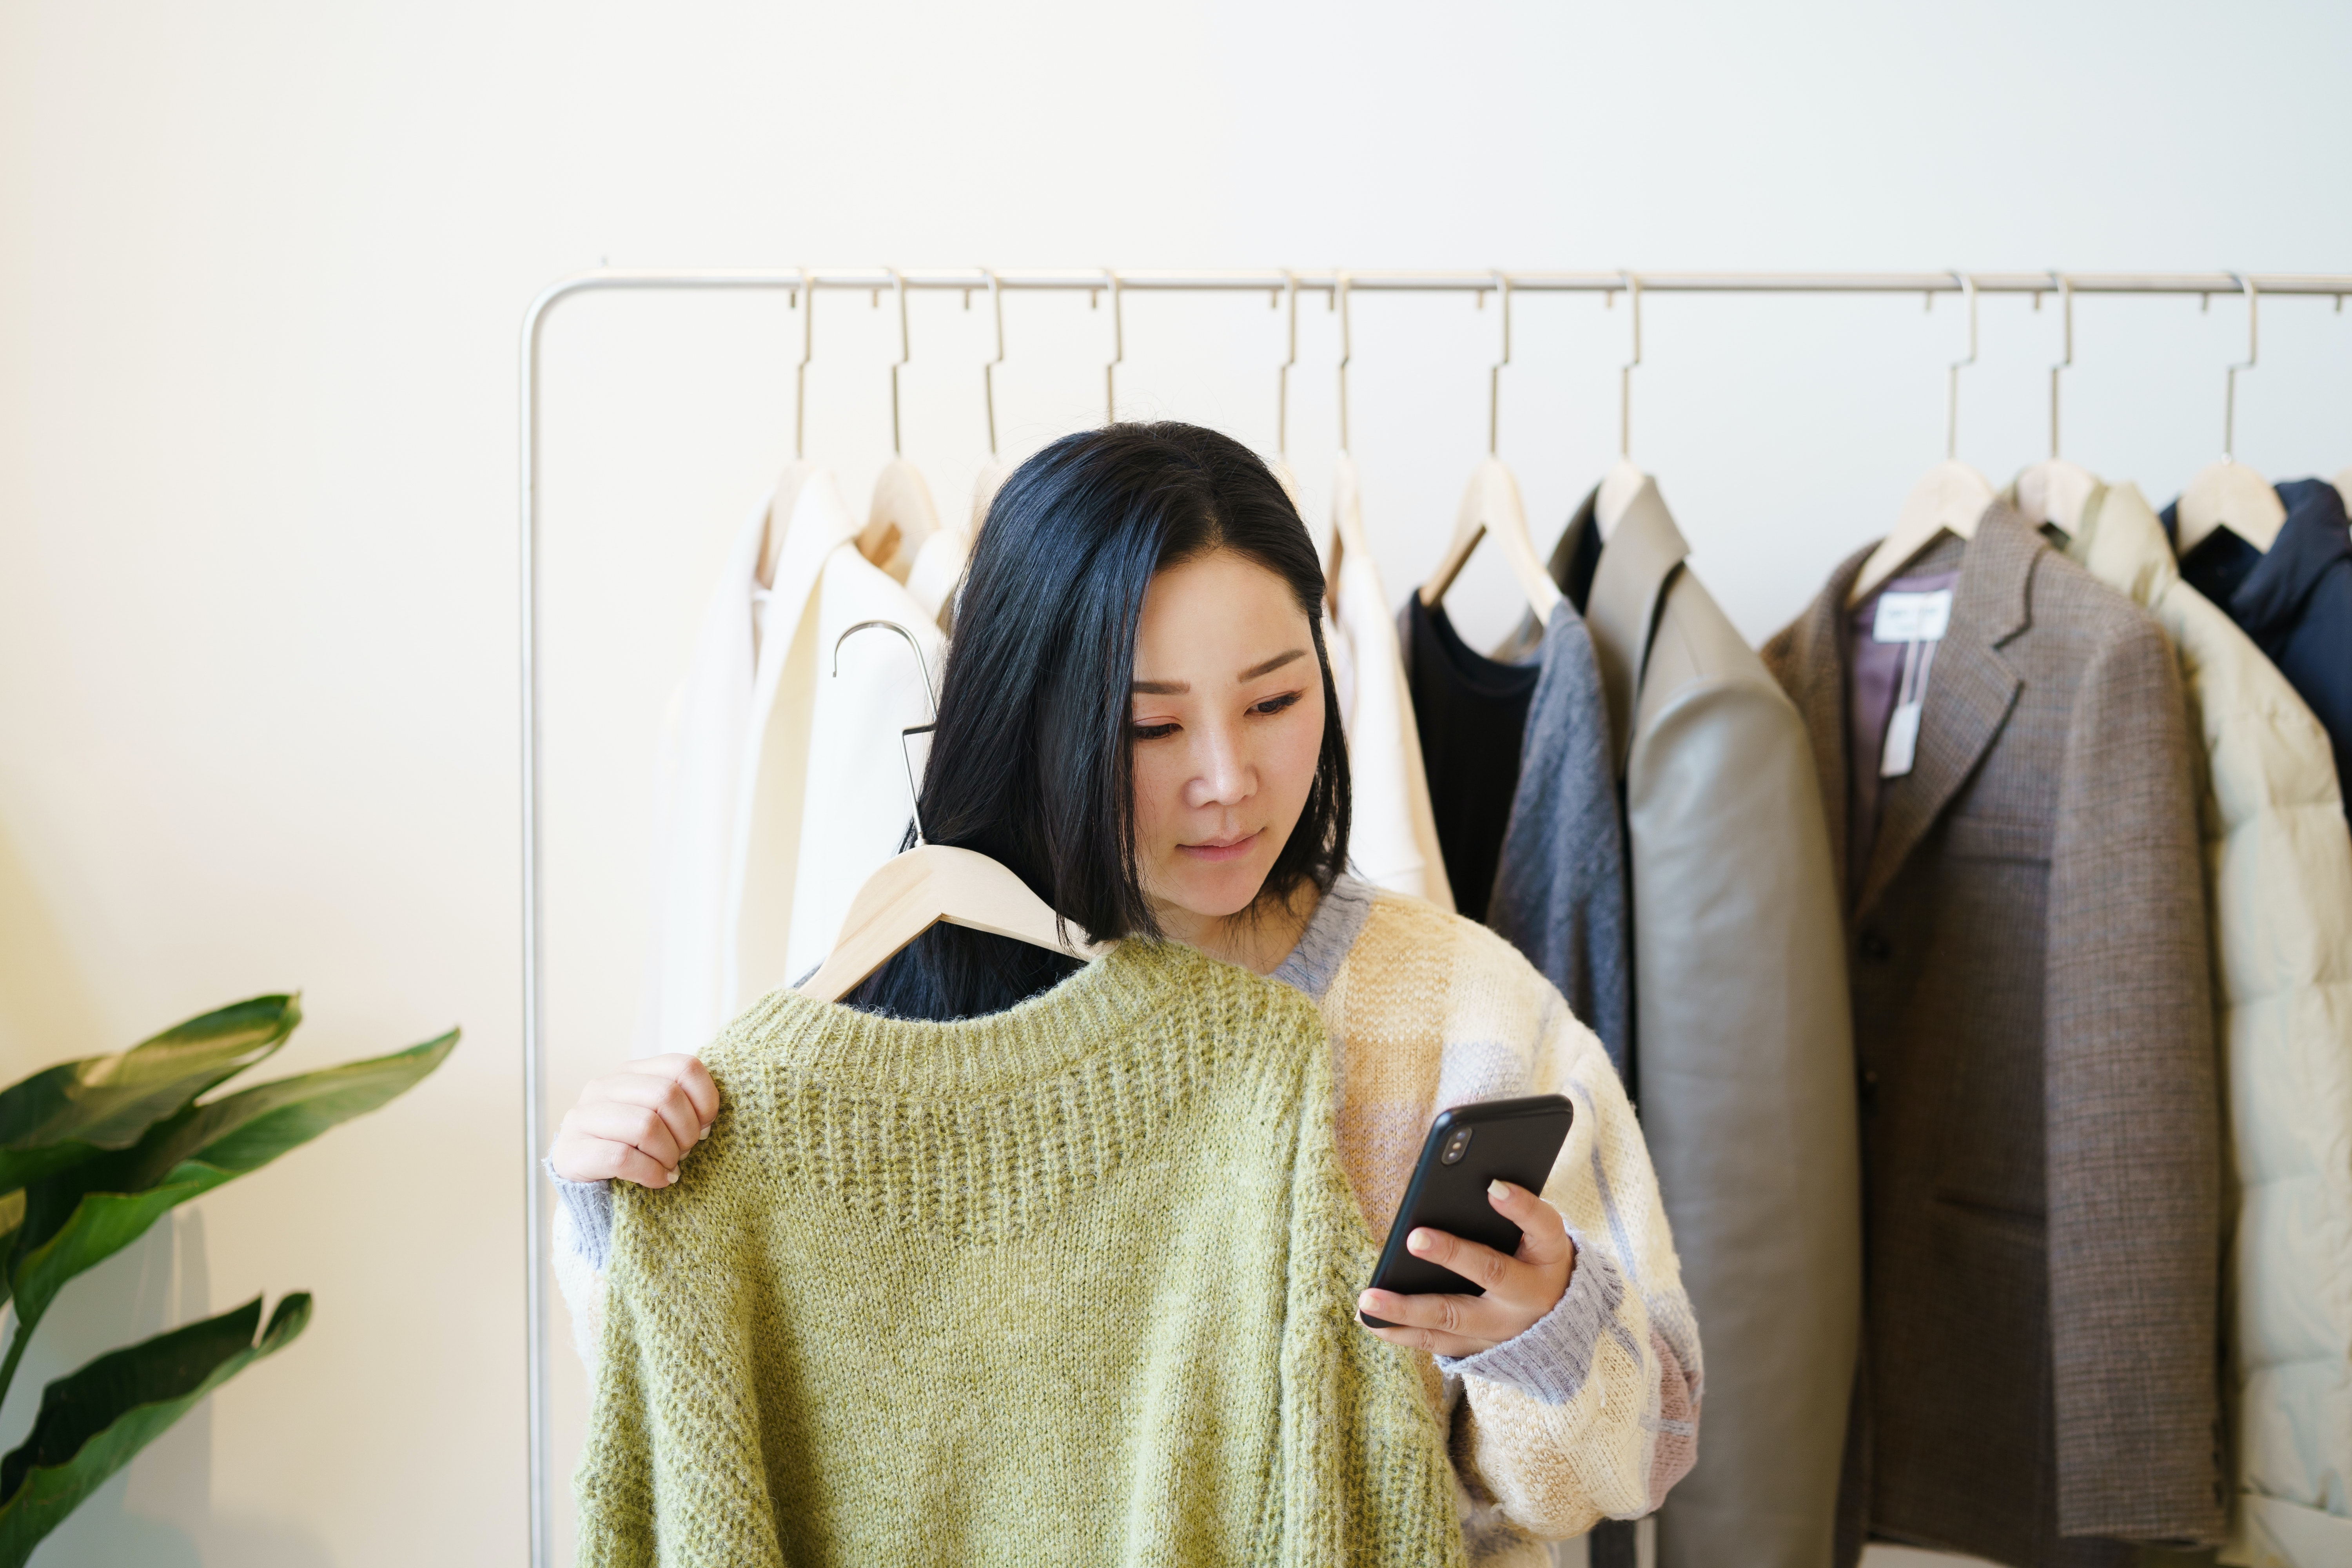 How To Make Your Closet Look Like A Boutique With 10 Trendy Products $40 Or Less